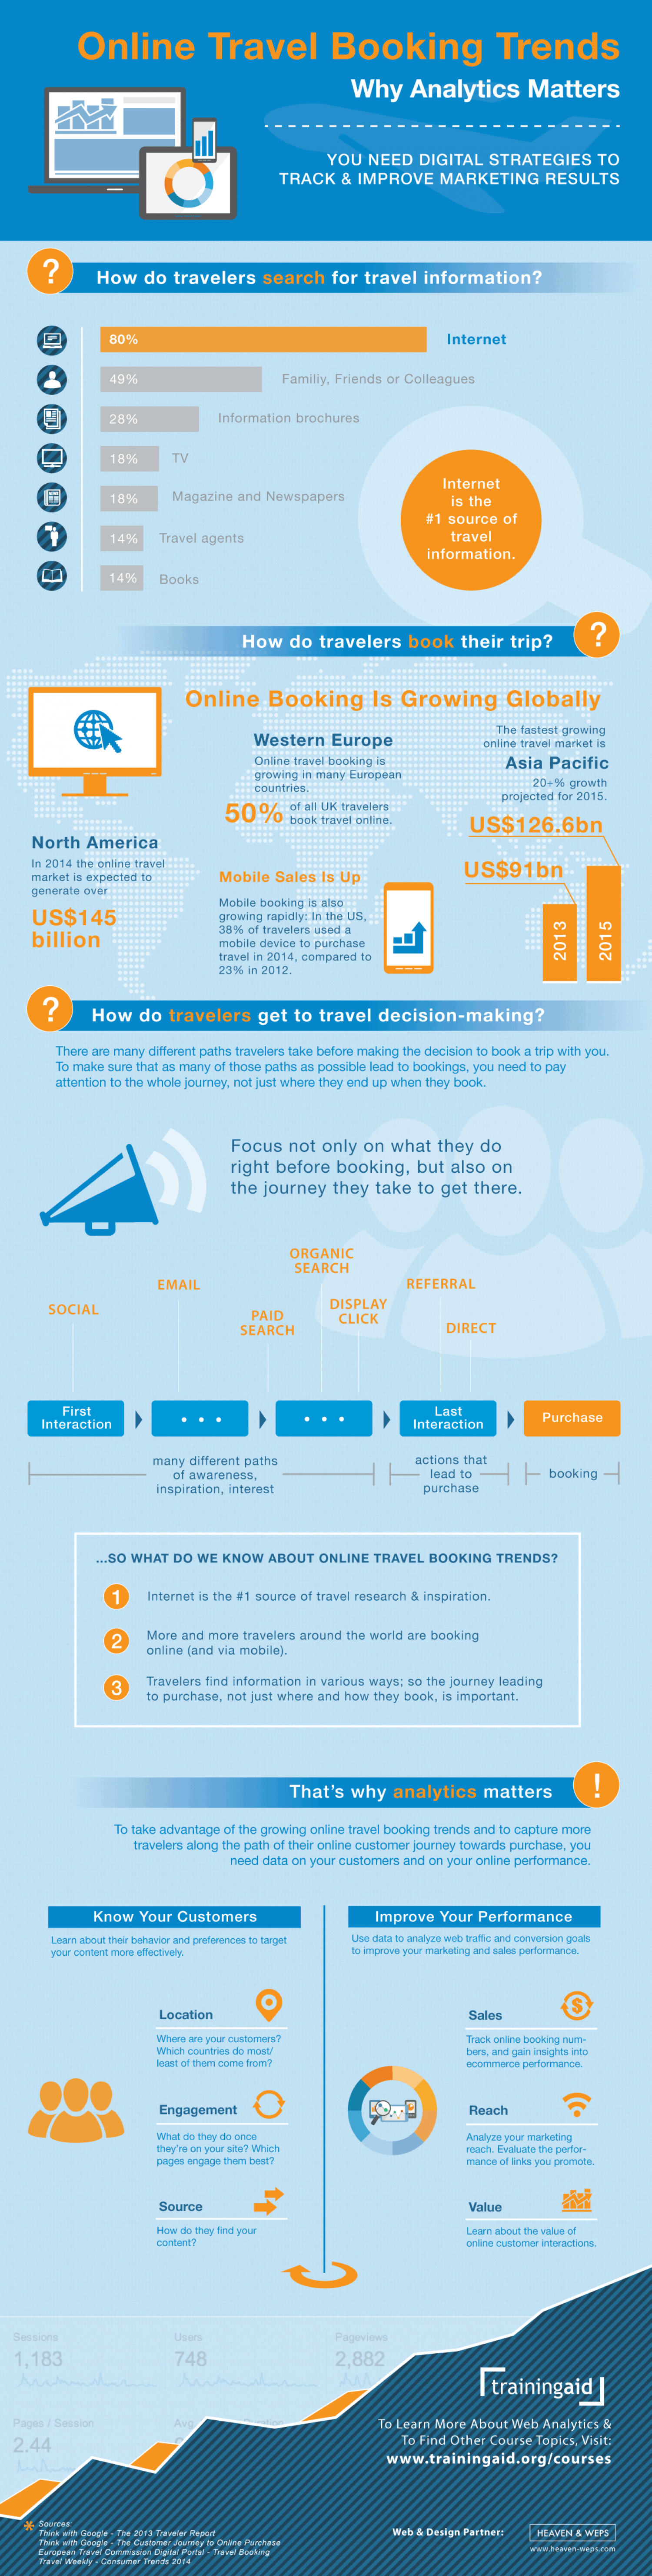 Online Travel Booking Trends & Web Analytics Infographic